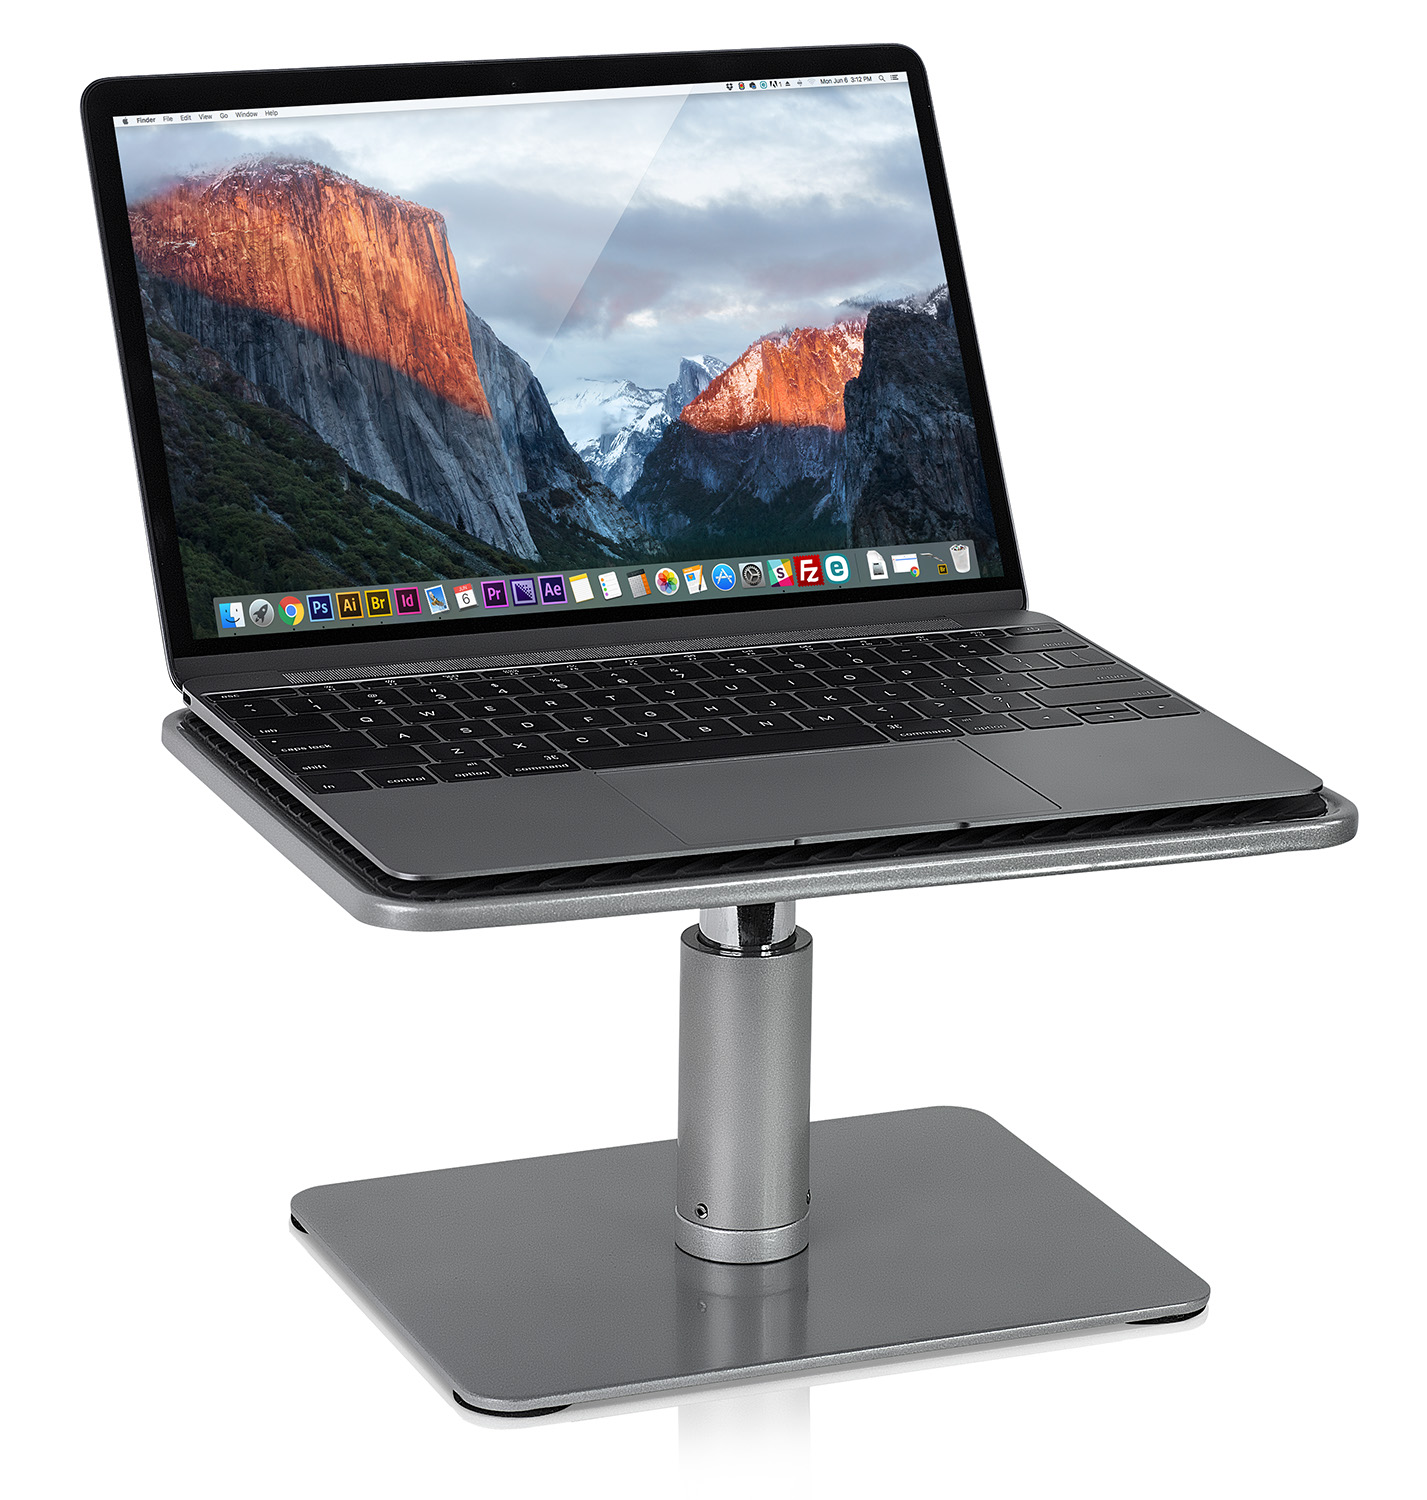 Mount-It! Laptop Stand for MacBook and PC, Monitor Desk Riser, Fits Up to 11 to 15 Inch Computers (MI-7272)